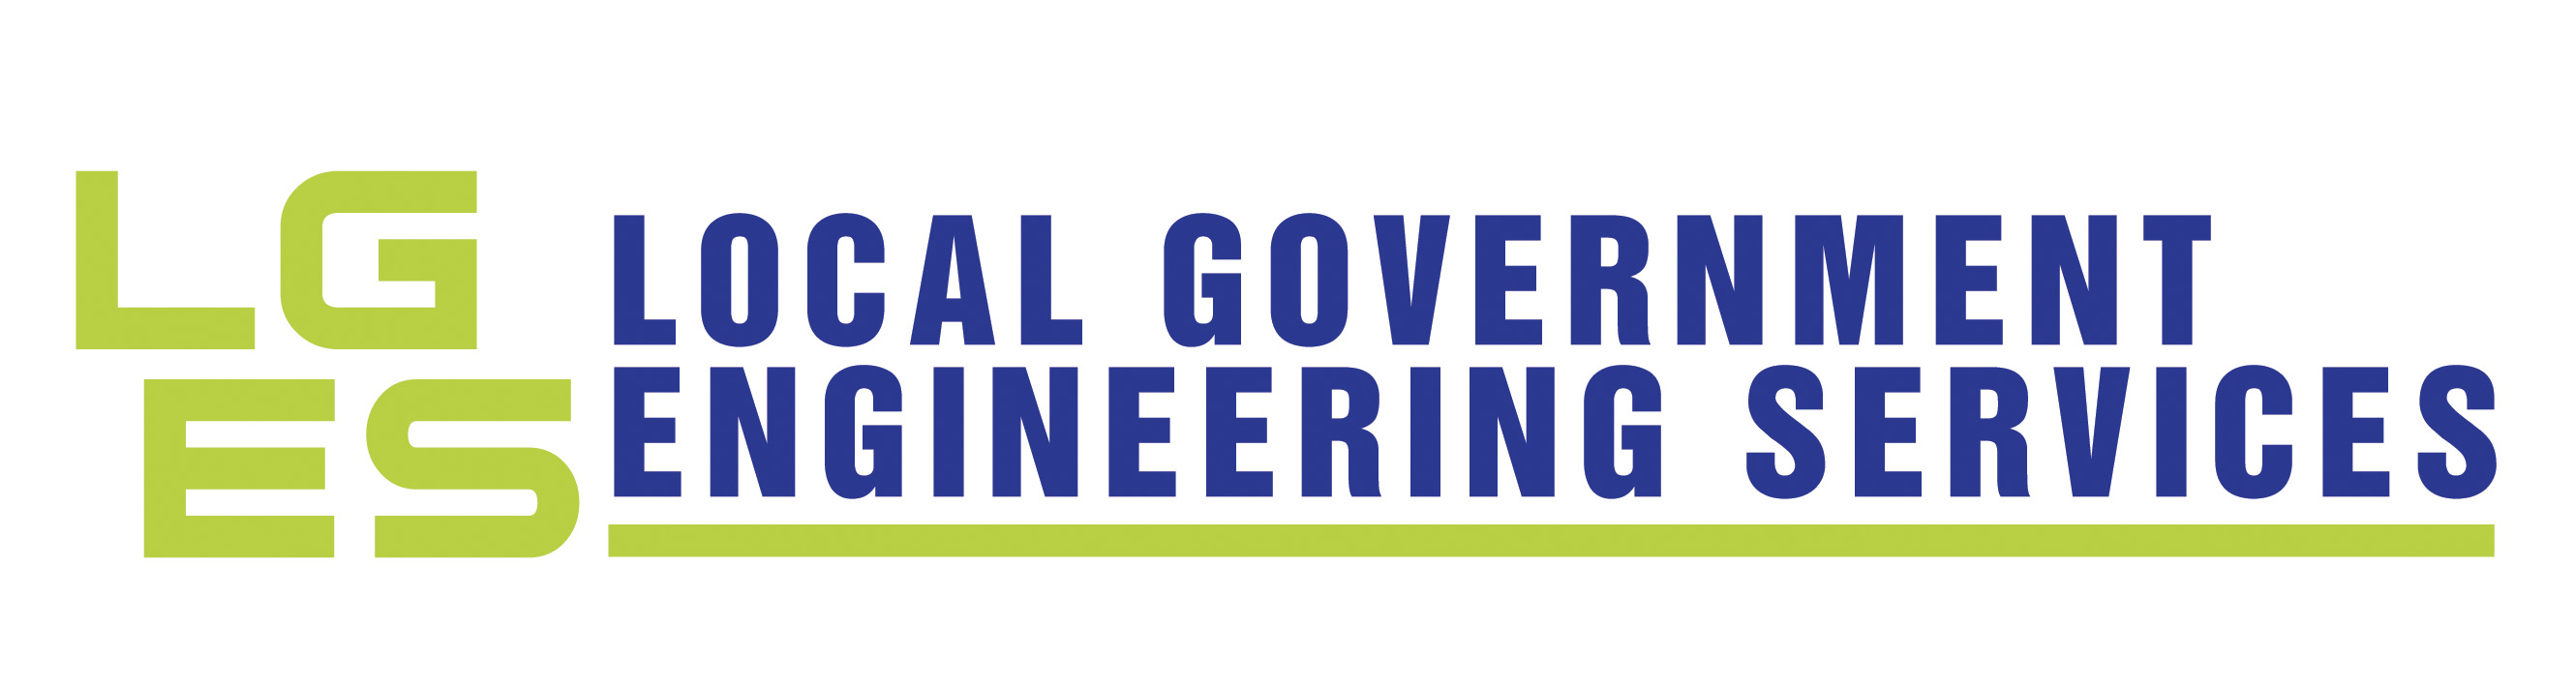 Local Government Engineering Services